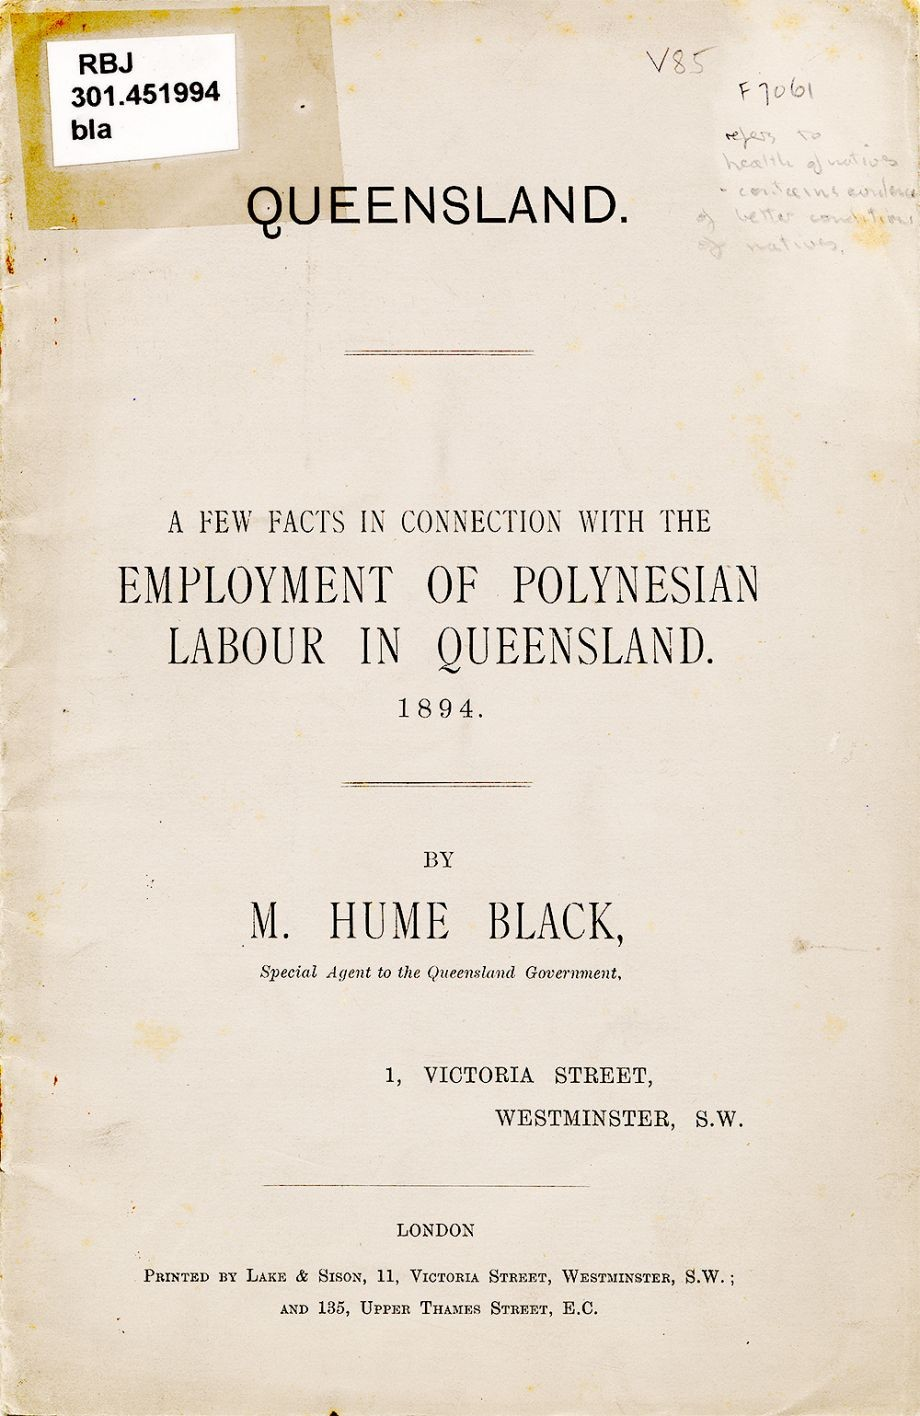 1894 A few facts in connection with the Employment of Polynesian Labour in Queensland 1894 by M Hume Black London  Qld government 1894